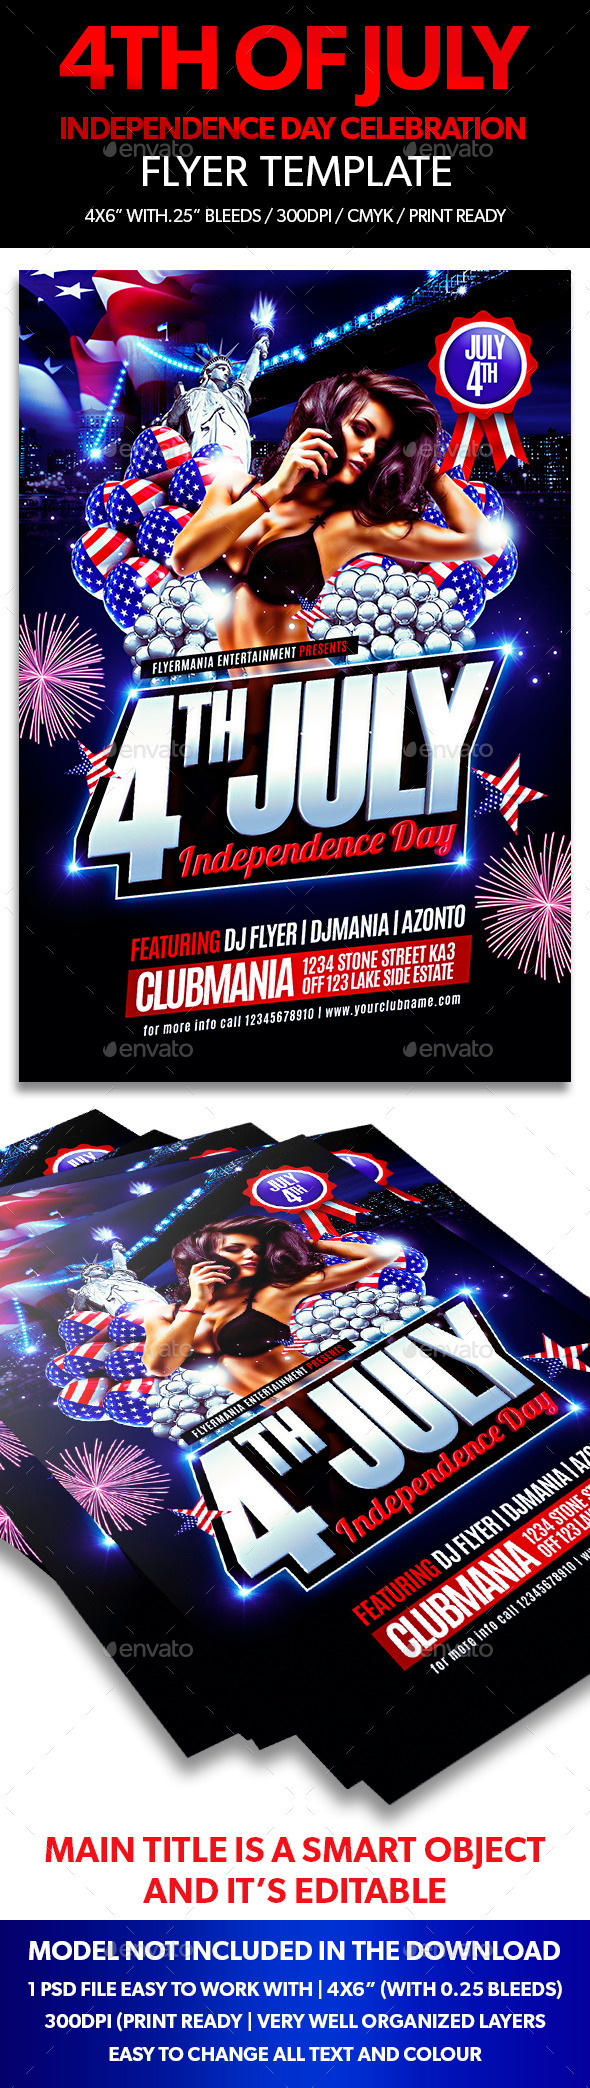 GraphicRiver Independence Day Celebration Flyer Template 11647920